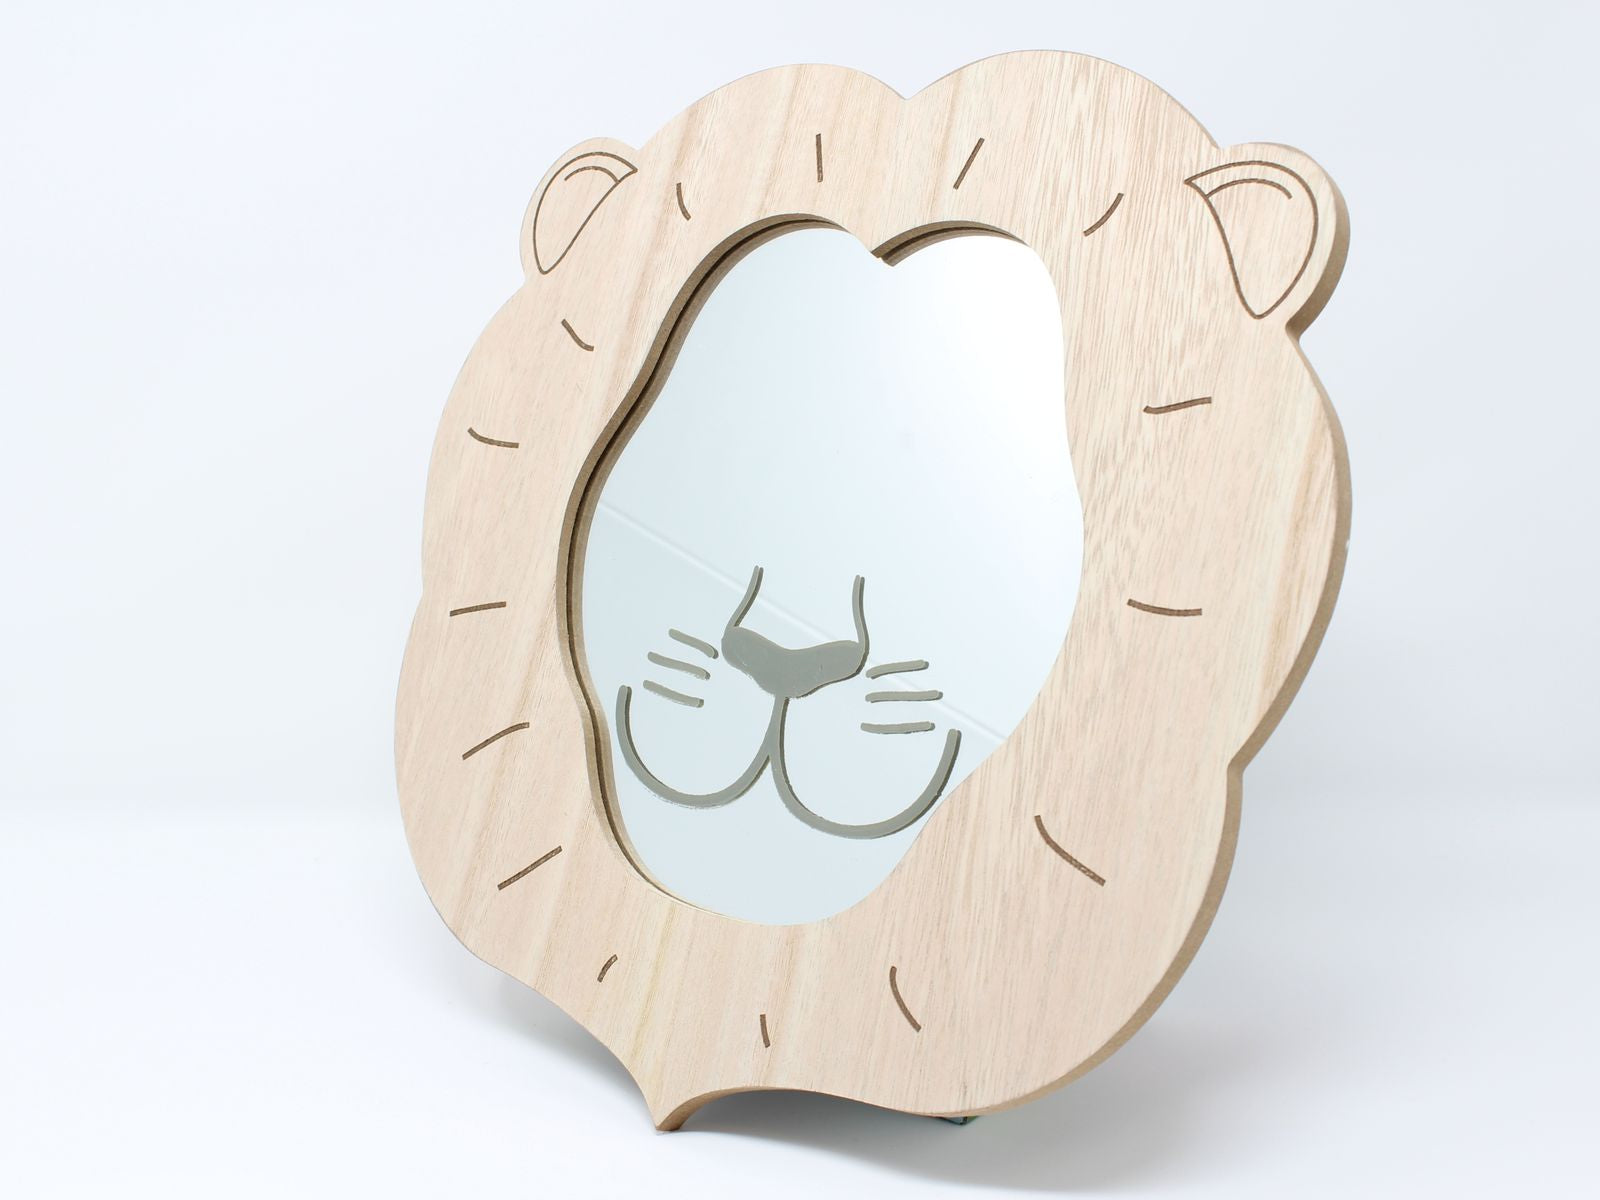 Wooden lions face childrens wall mirror for my house wooden lions face childrens wall mirror amipublicfo Choice Image